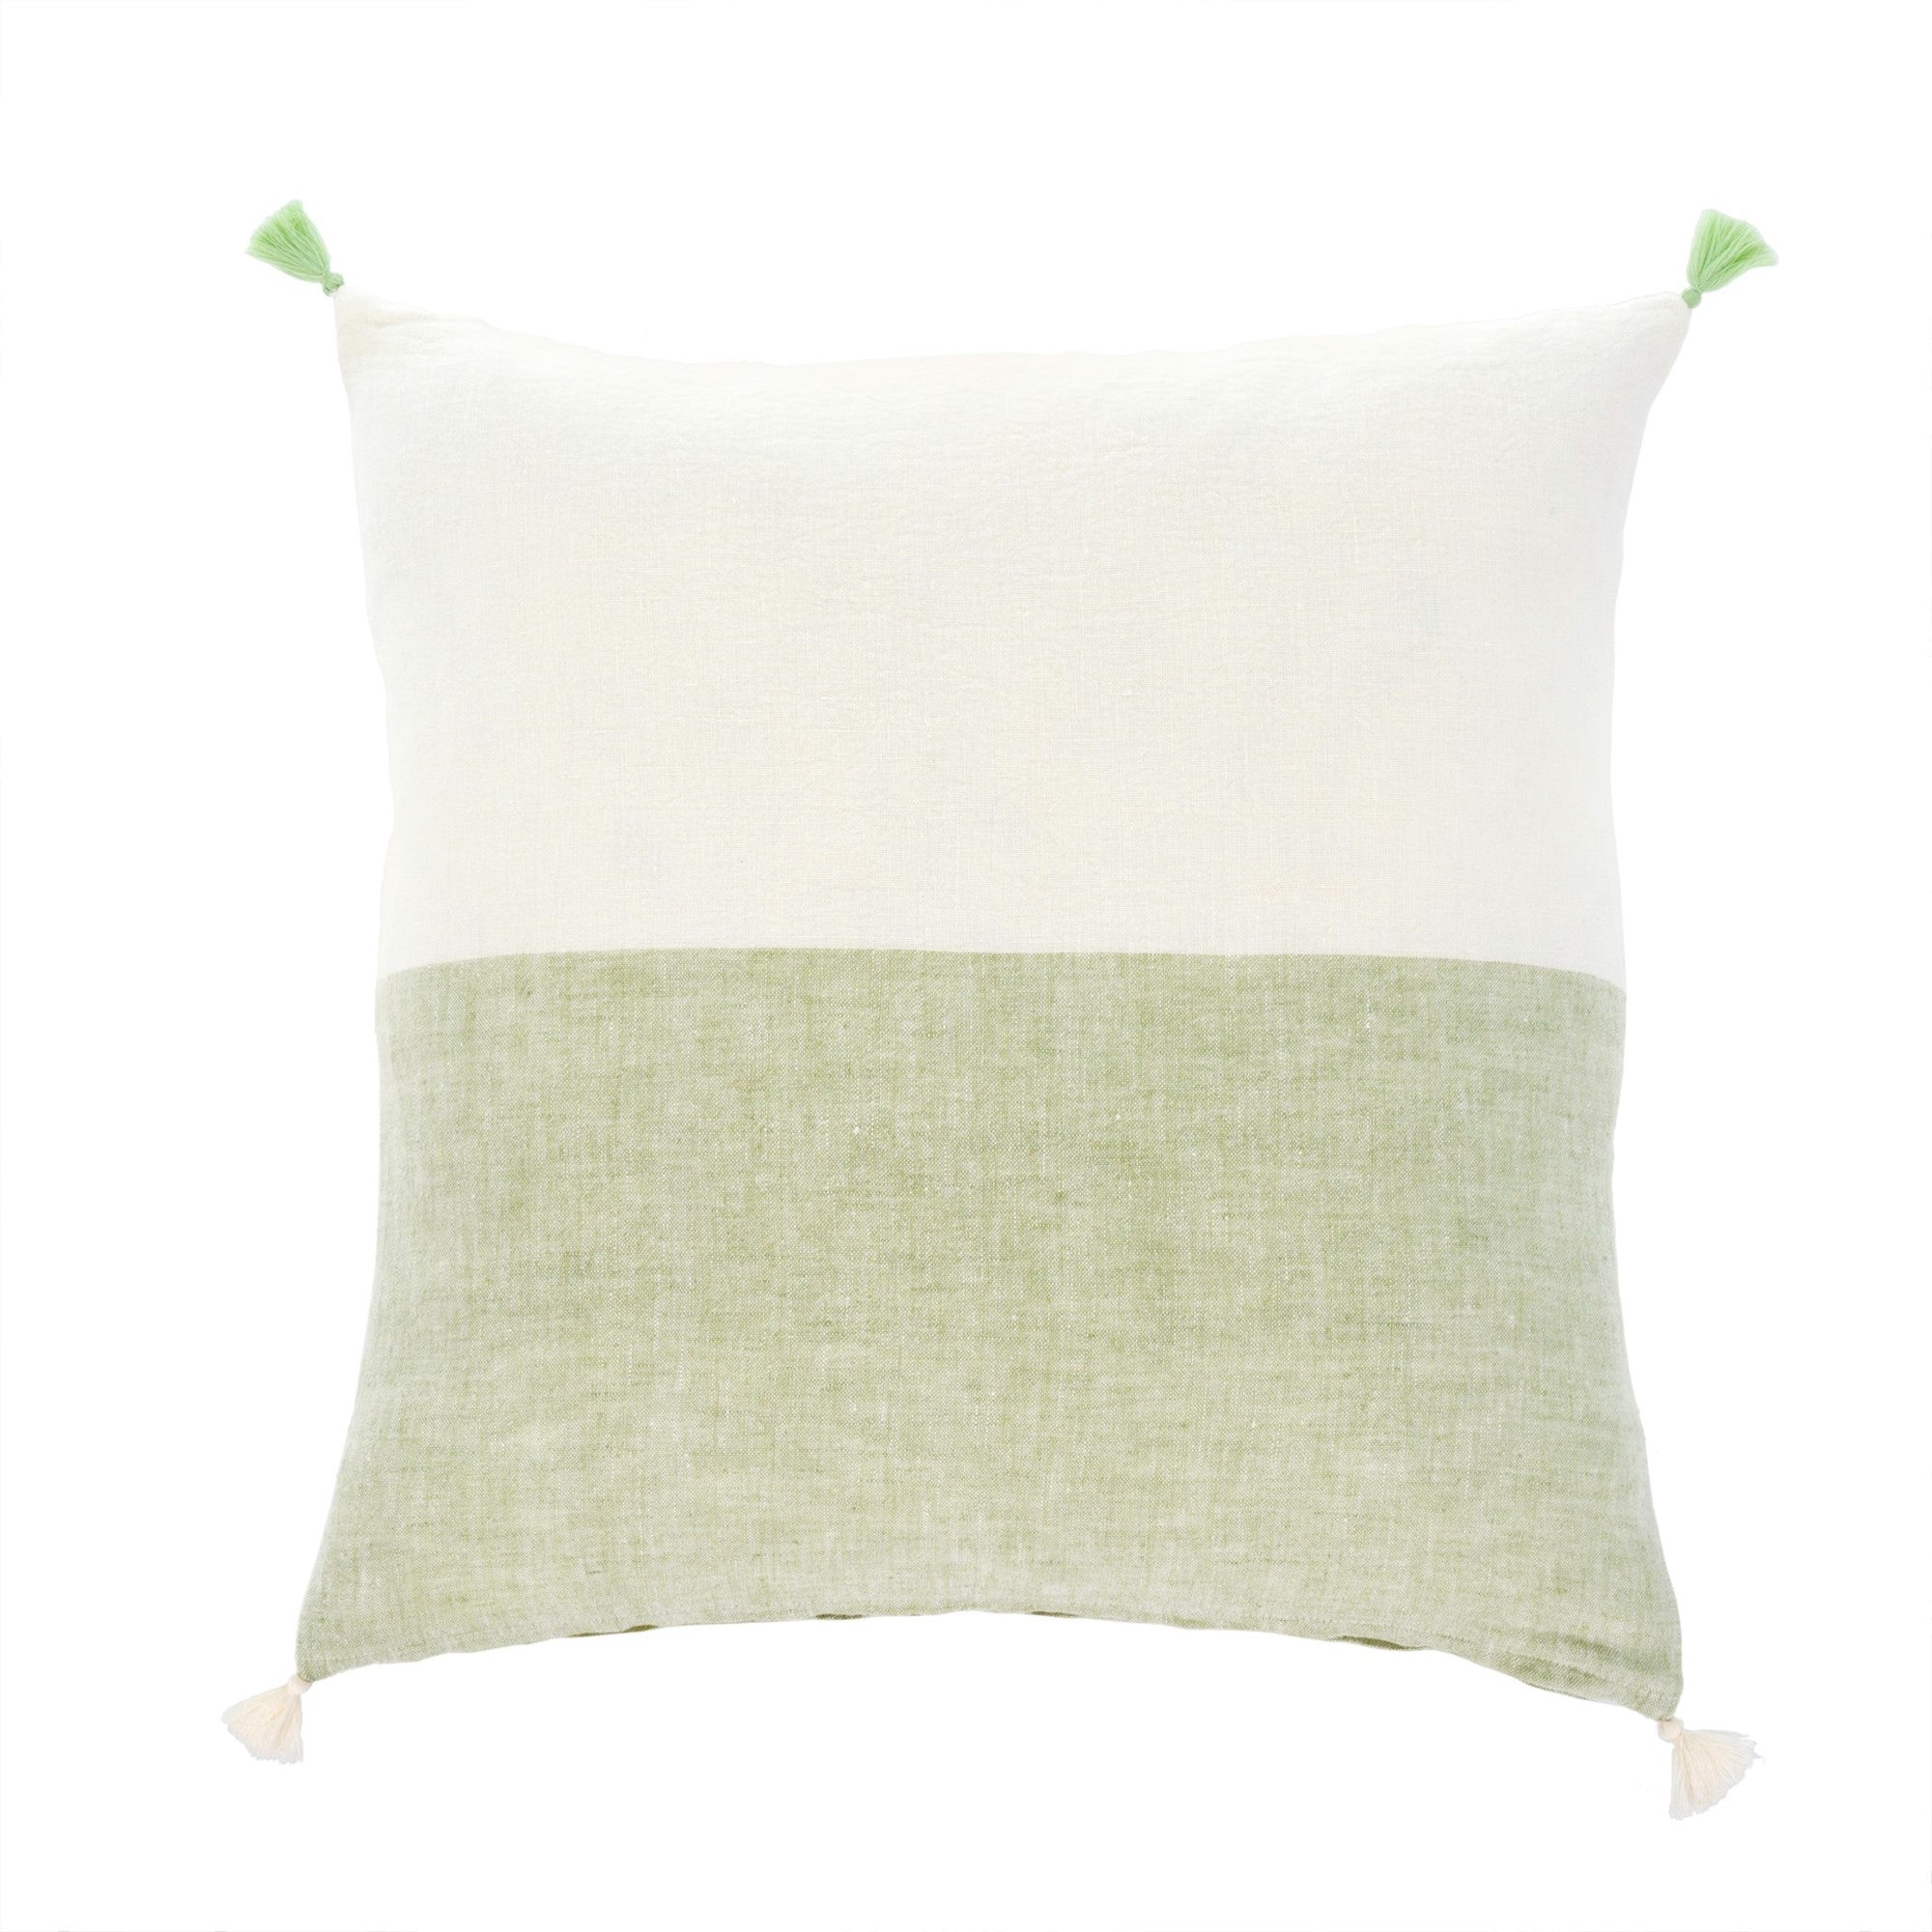 Layla Linen Pillow - Green | Putti Fine Furnishings